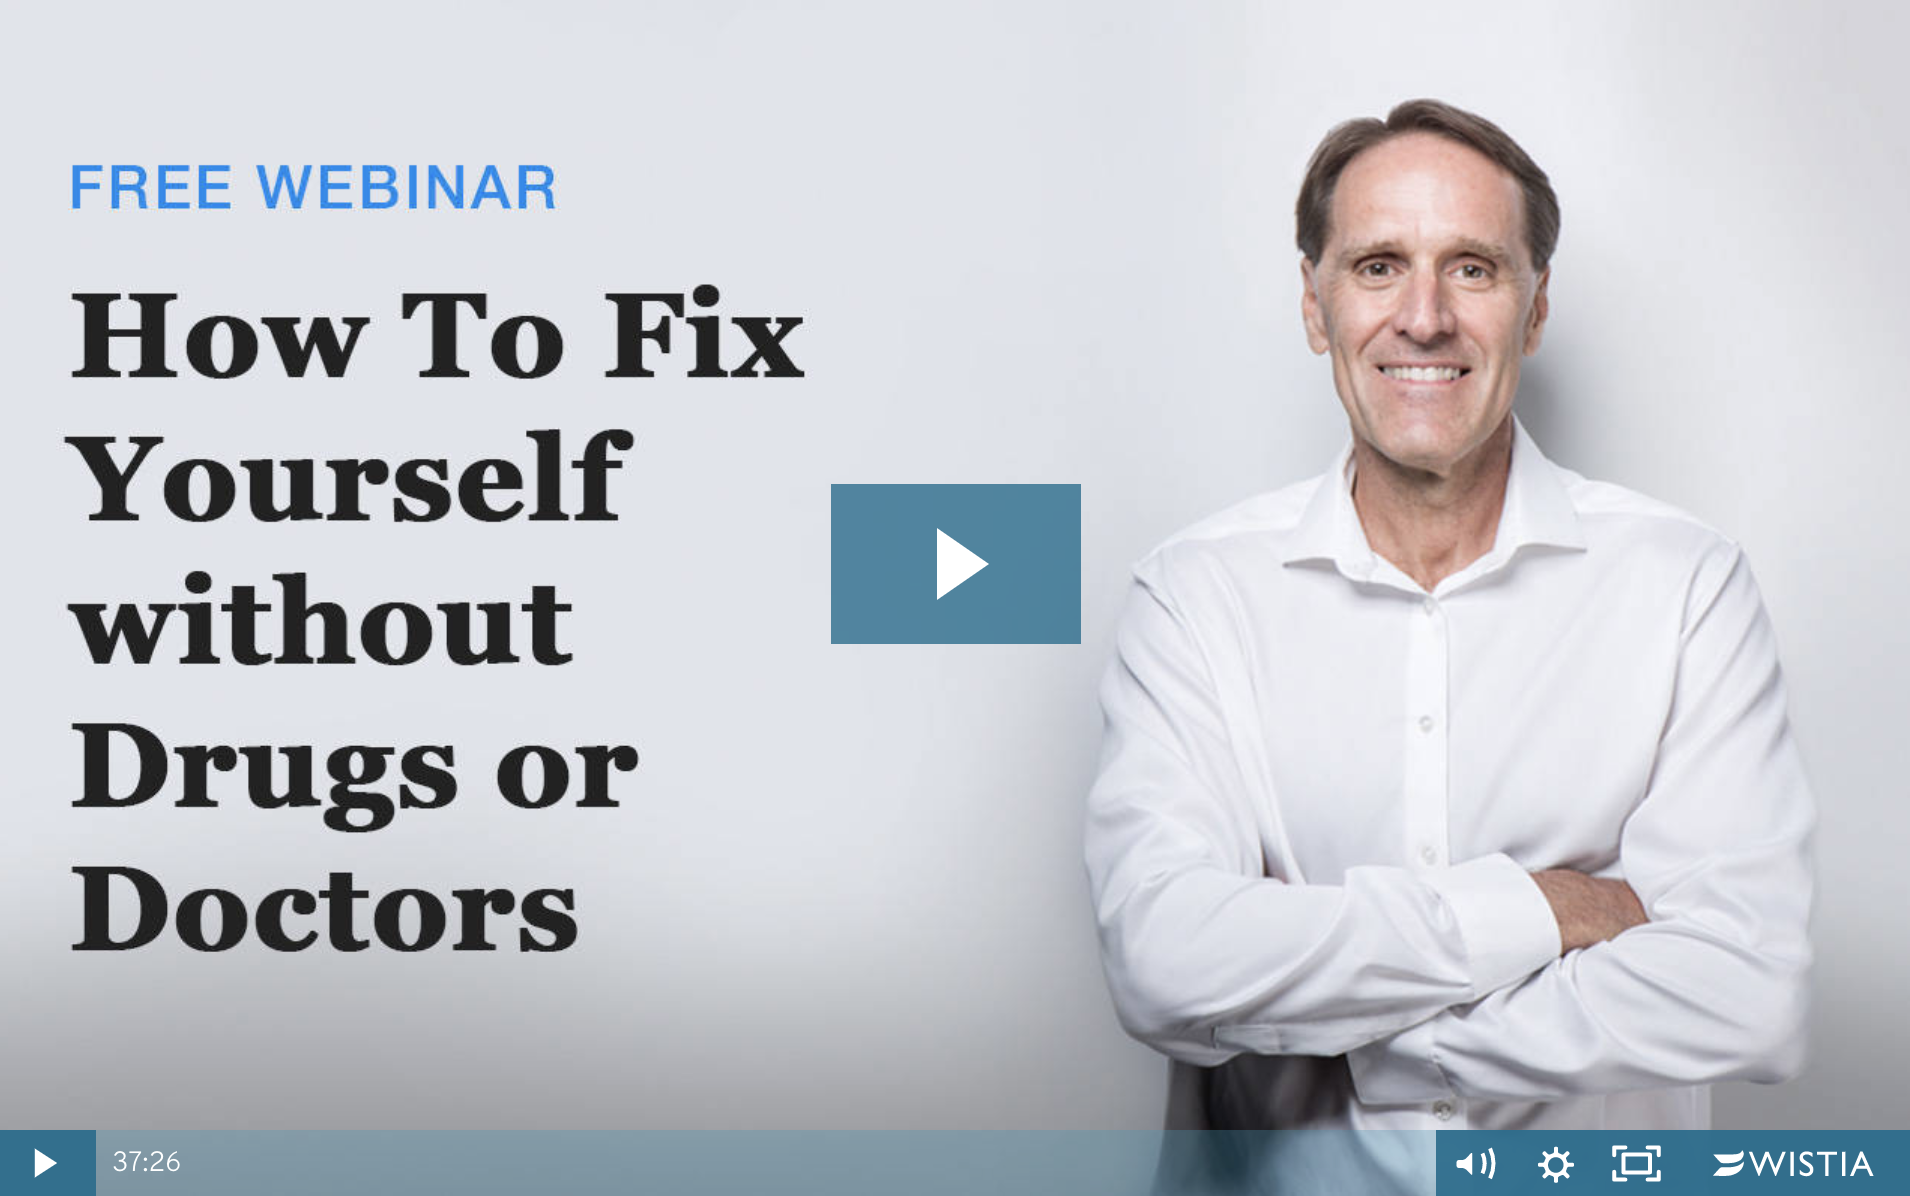 FREE WEBINAR: How To Fix Yourself without Drugs or Doctors